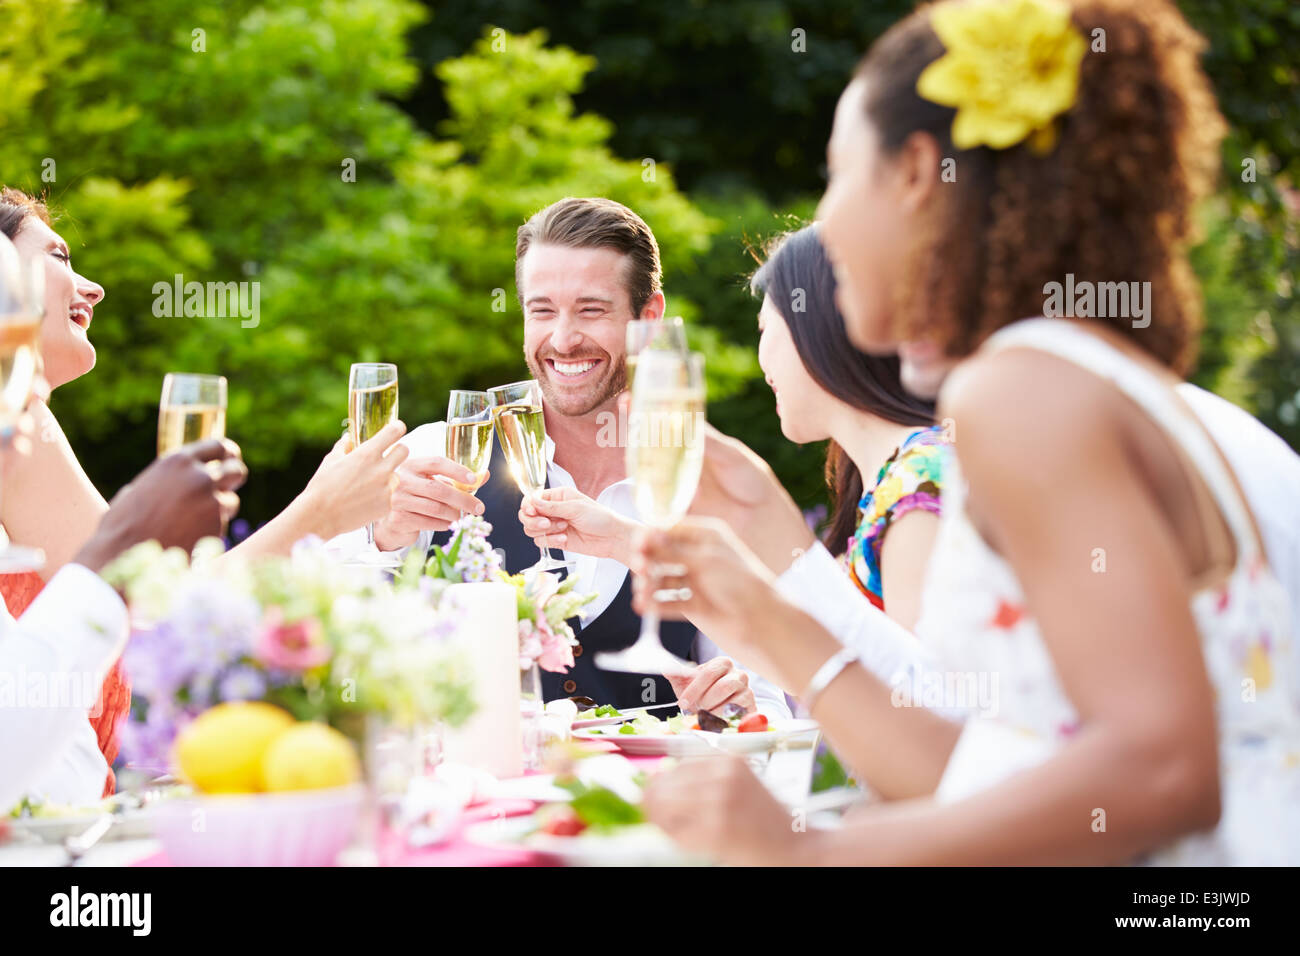 Group Of Friends Enjoying Outdoor Dinner Party - Stock Image